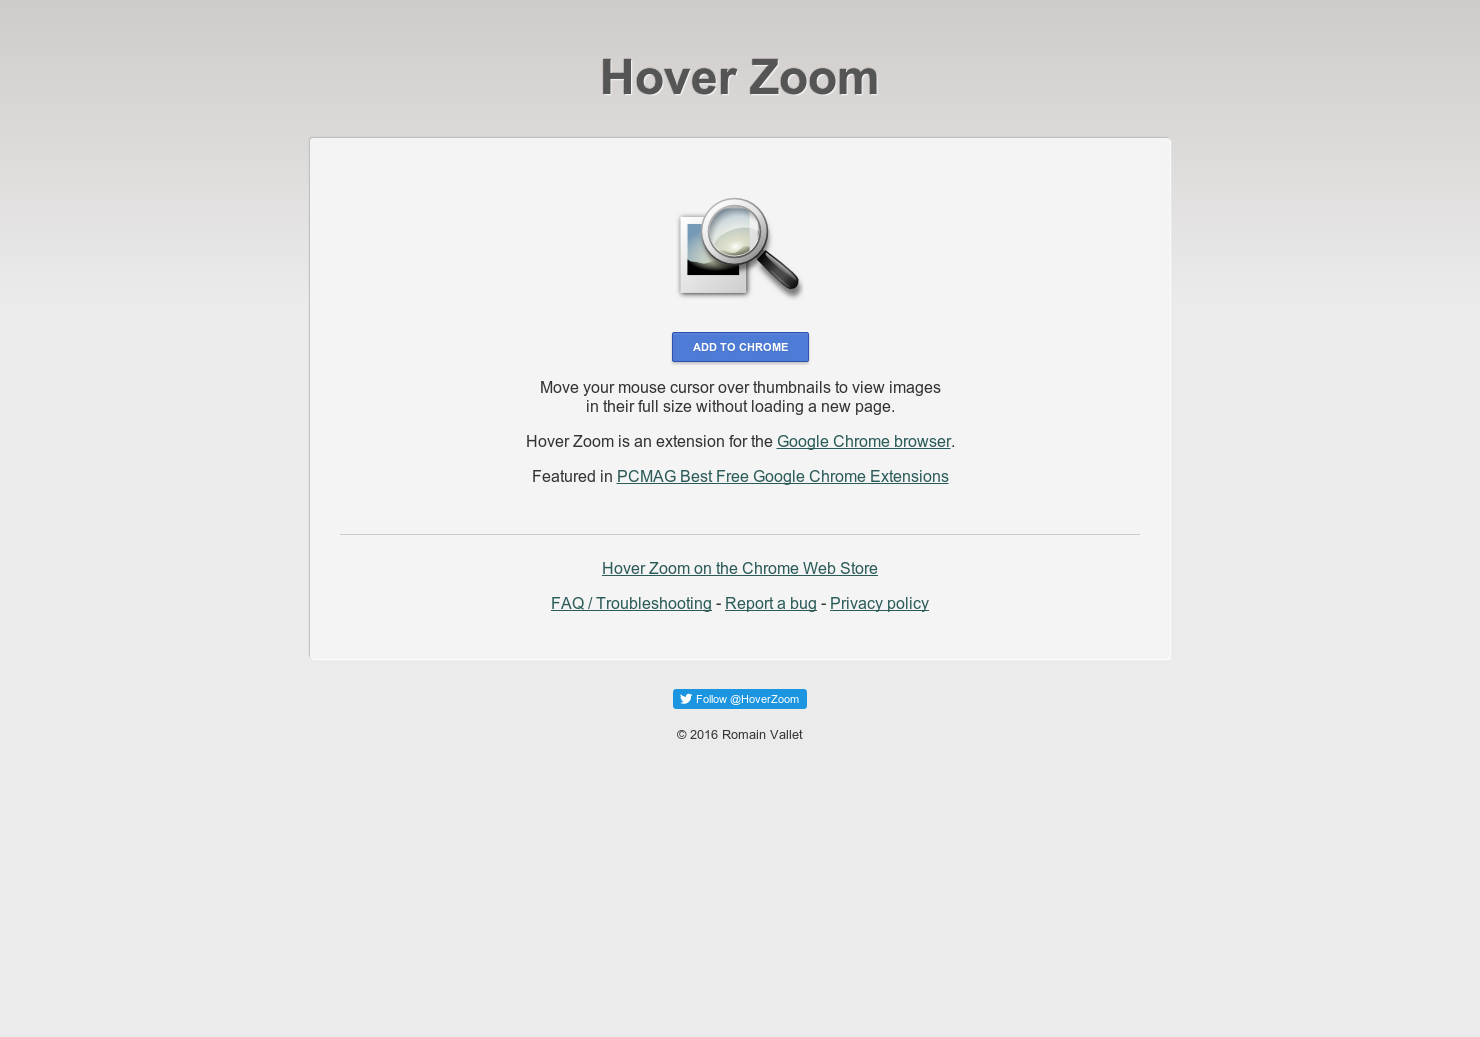 Hover Zoom - View Thumbnail Pictures Without Loading Page